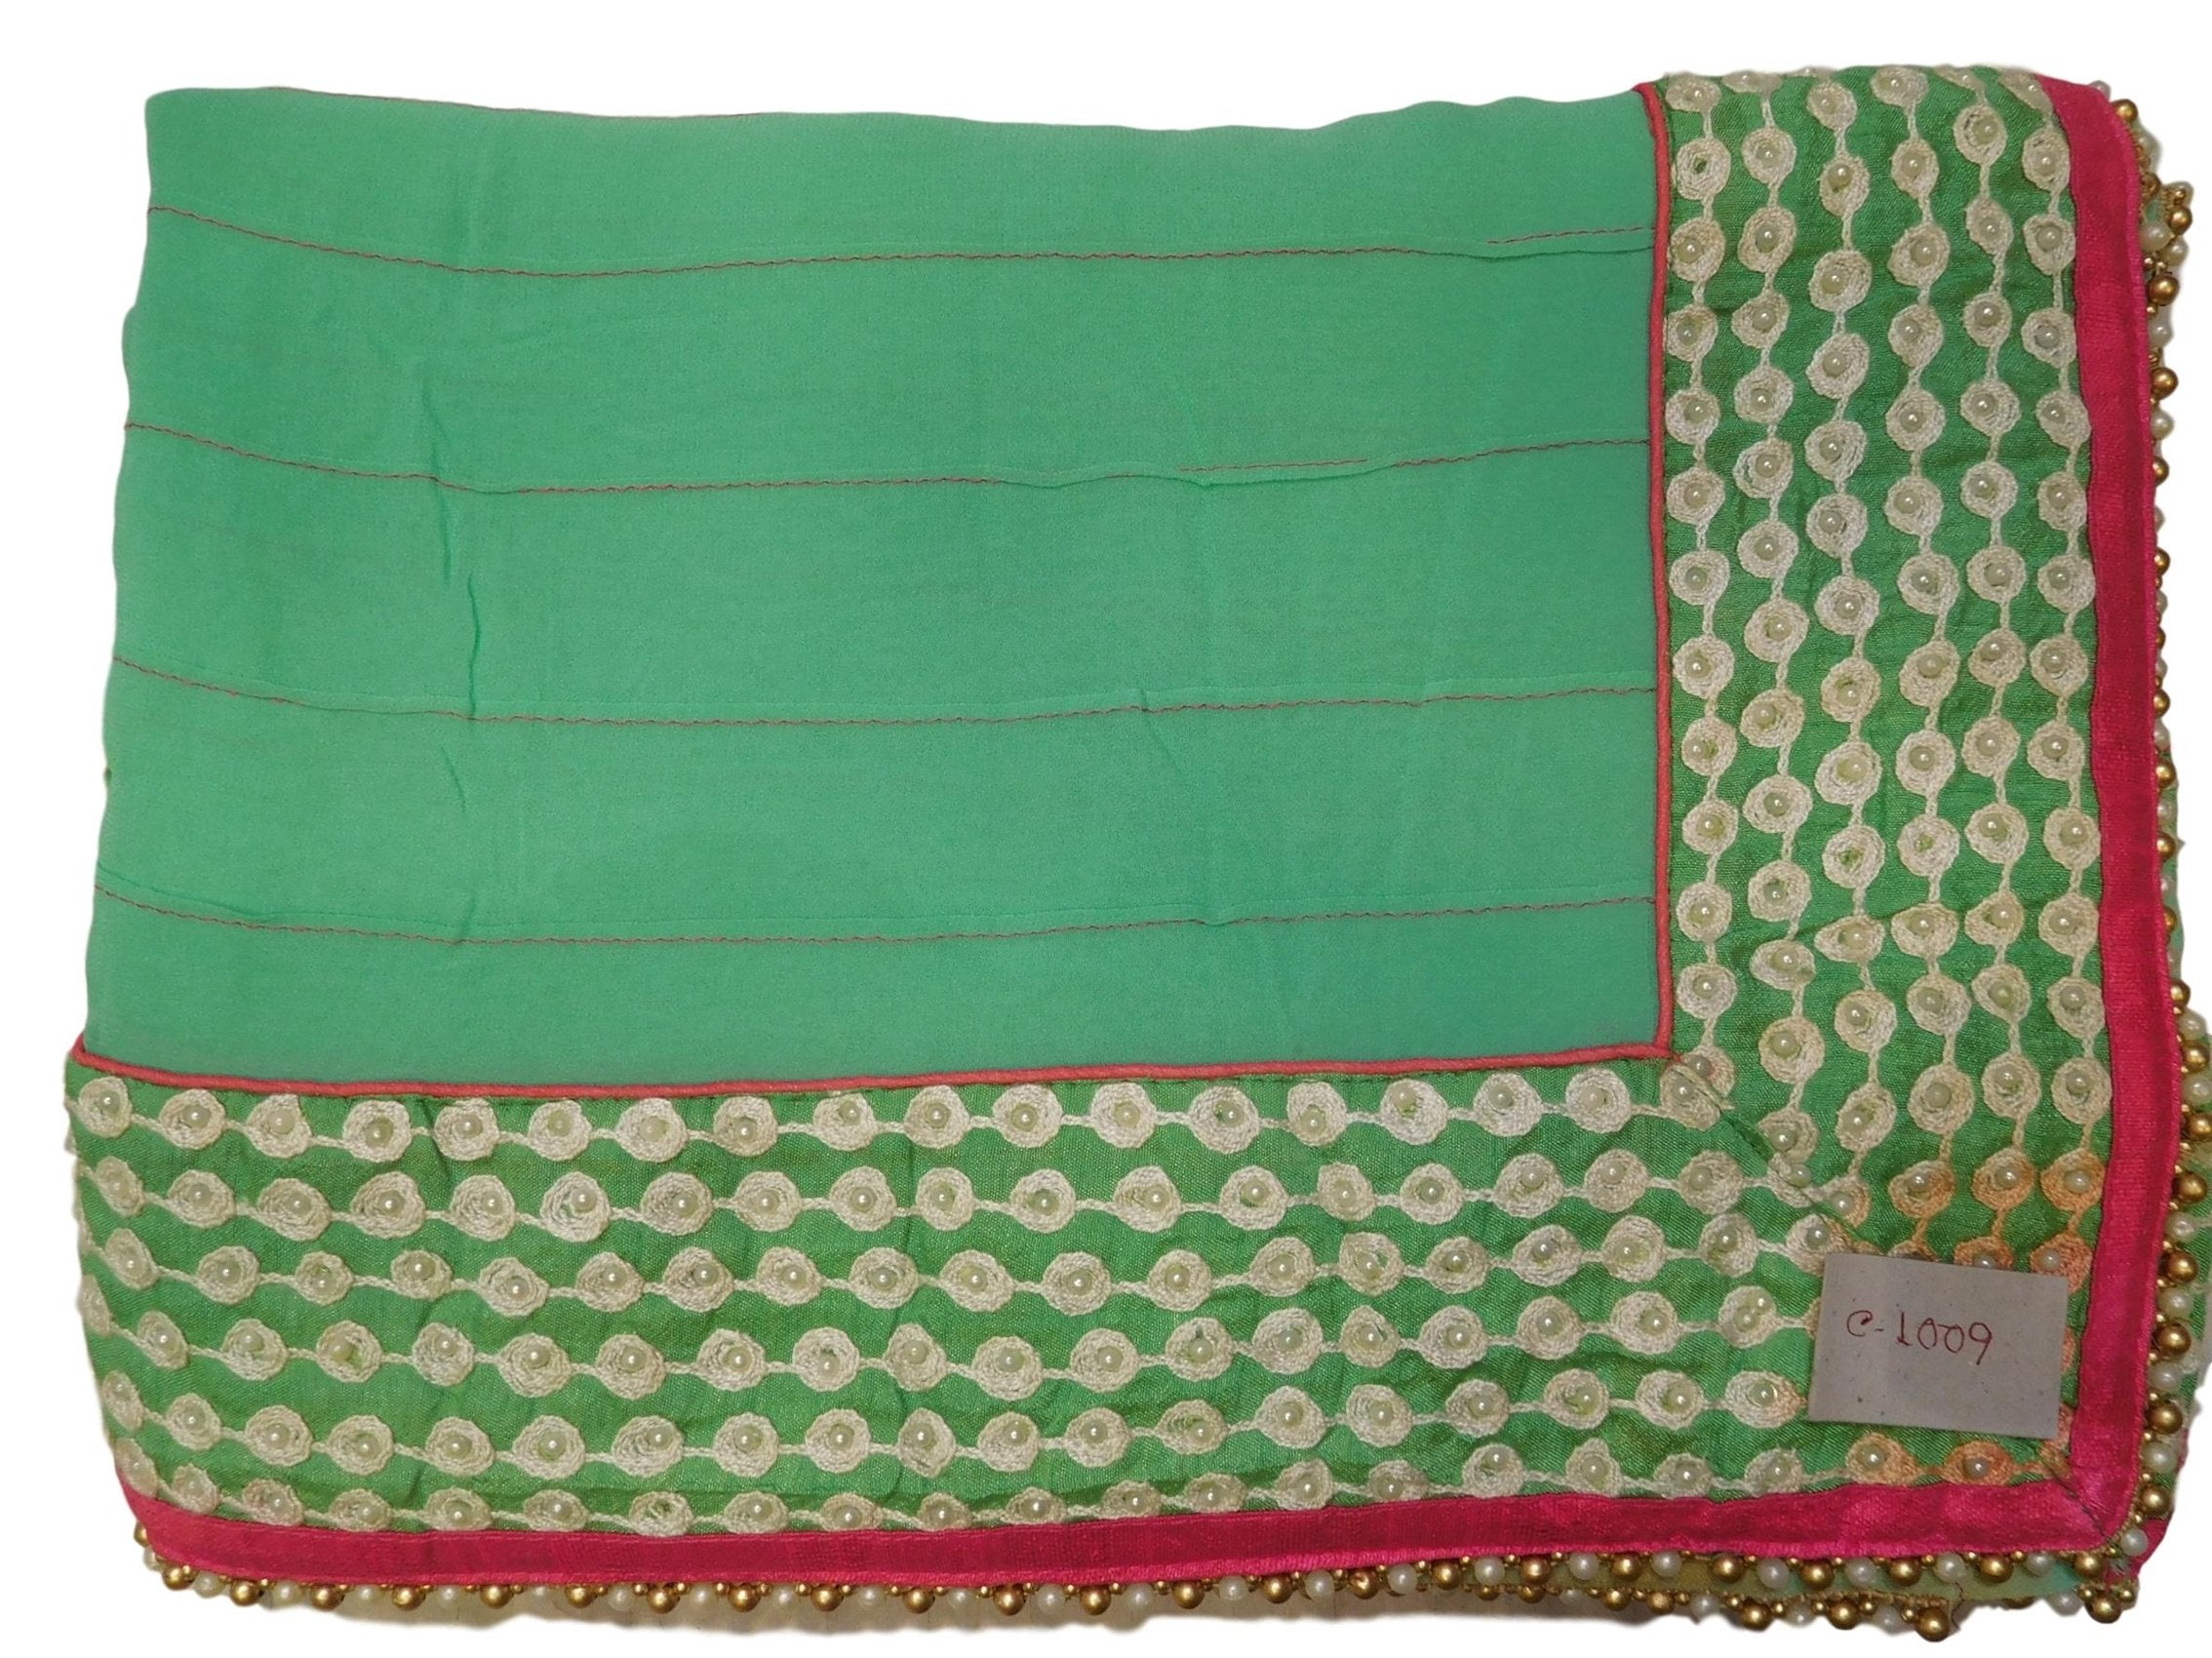 Turquoise Designer PartyWear Georgette (Viscos) Pearl Thread Hand Embroidery Work Saree Sari